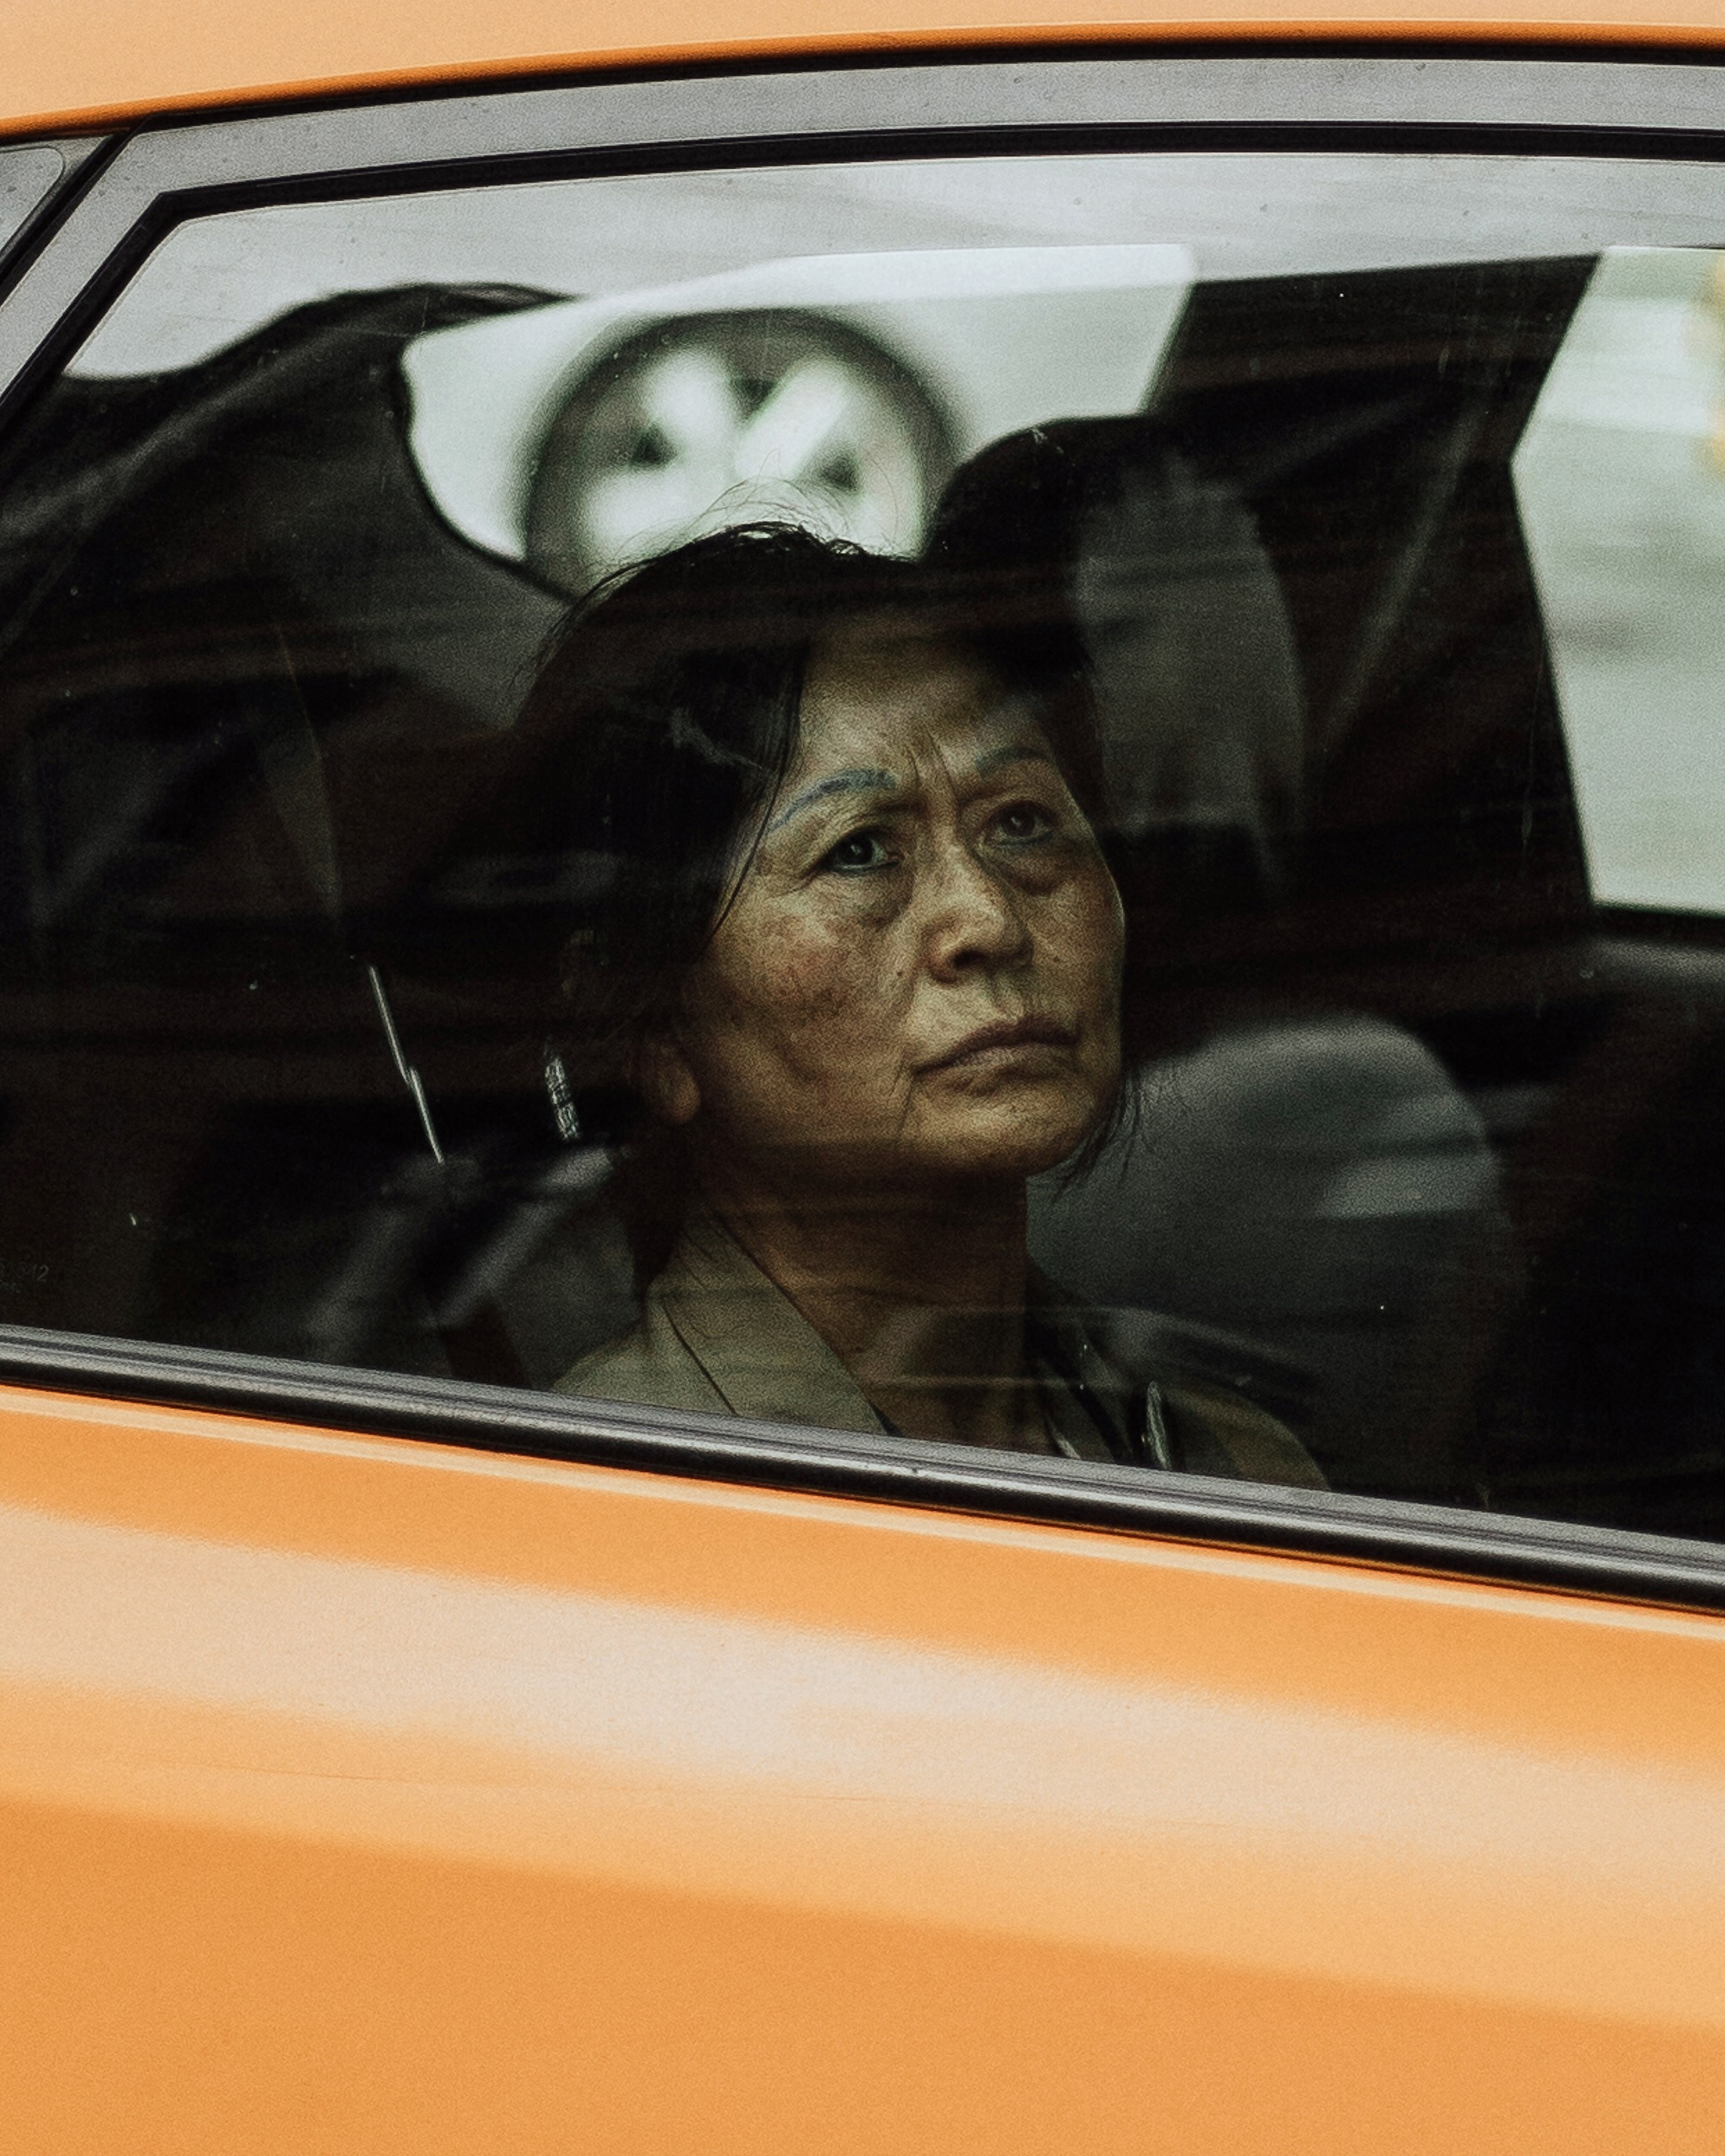 Woman driving in a yellow cab, reflection, street photography, new york city, michelle viljoen